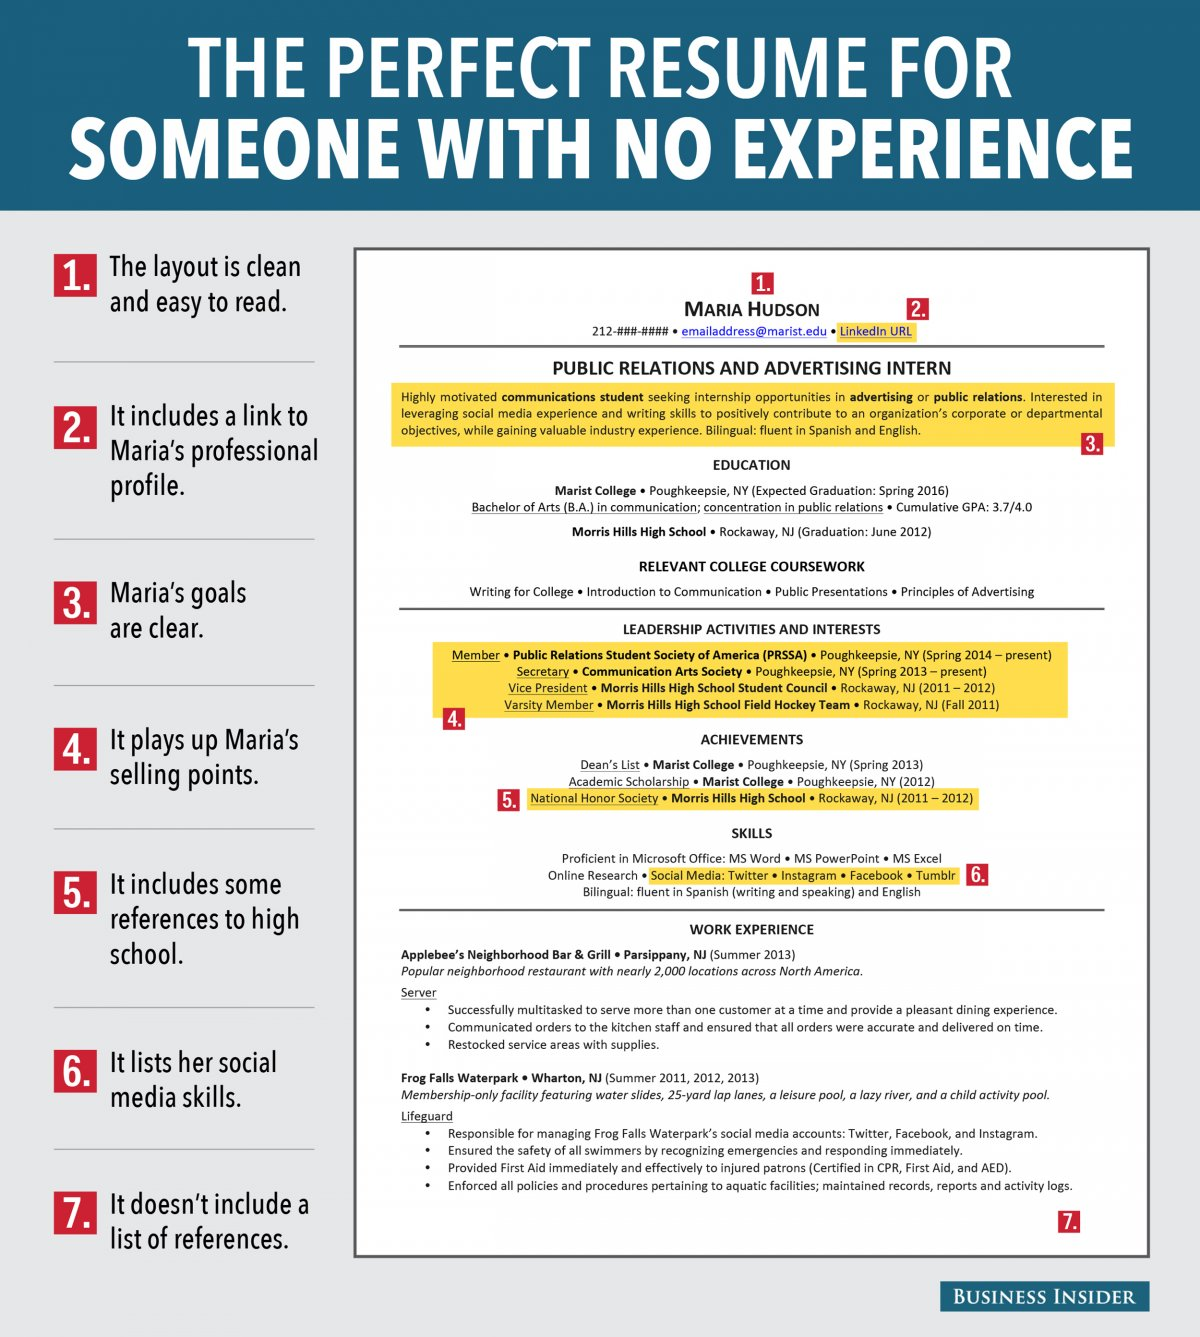 7 reasons this is an excellent CV for someone with no experience ...